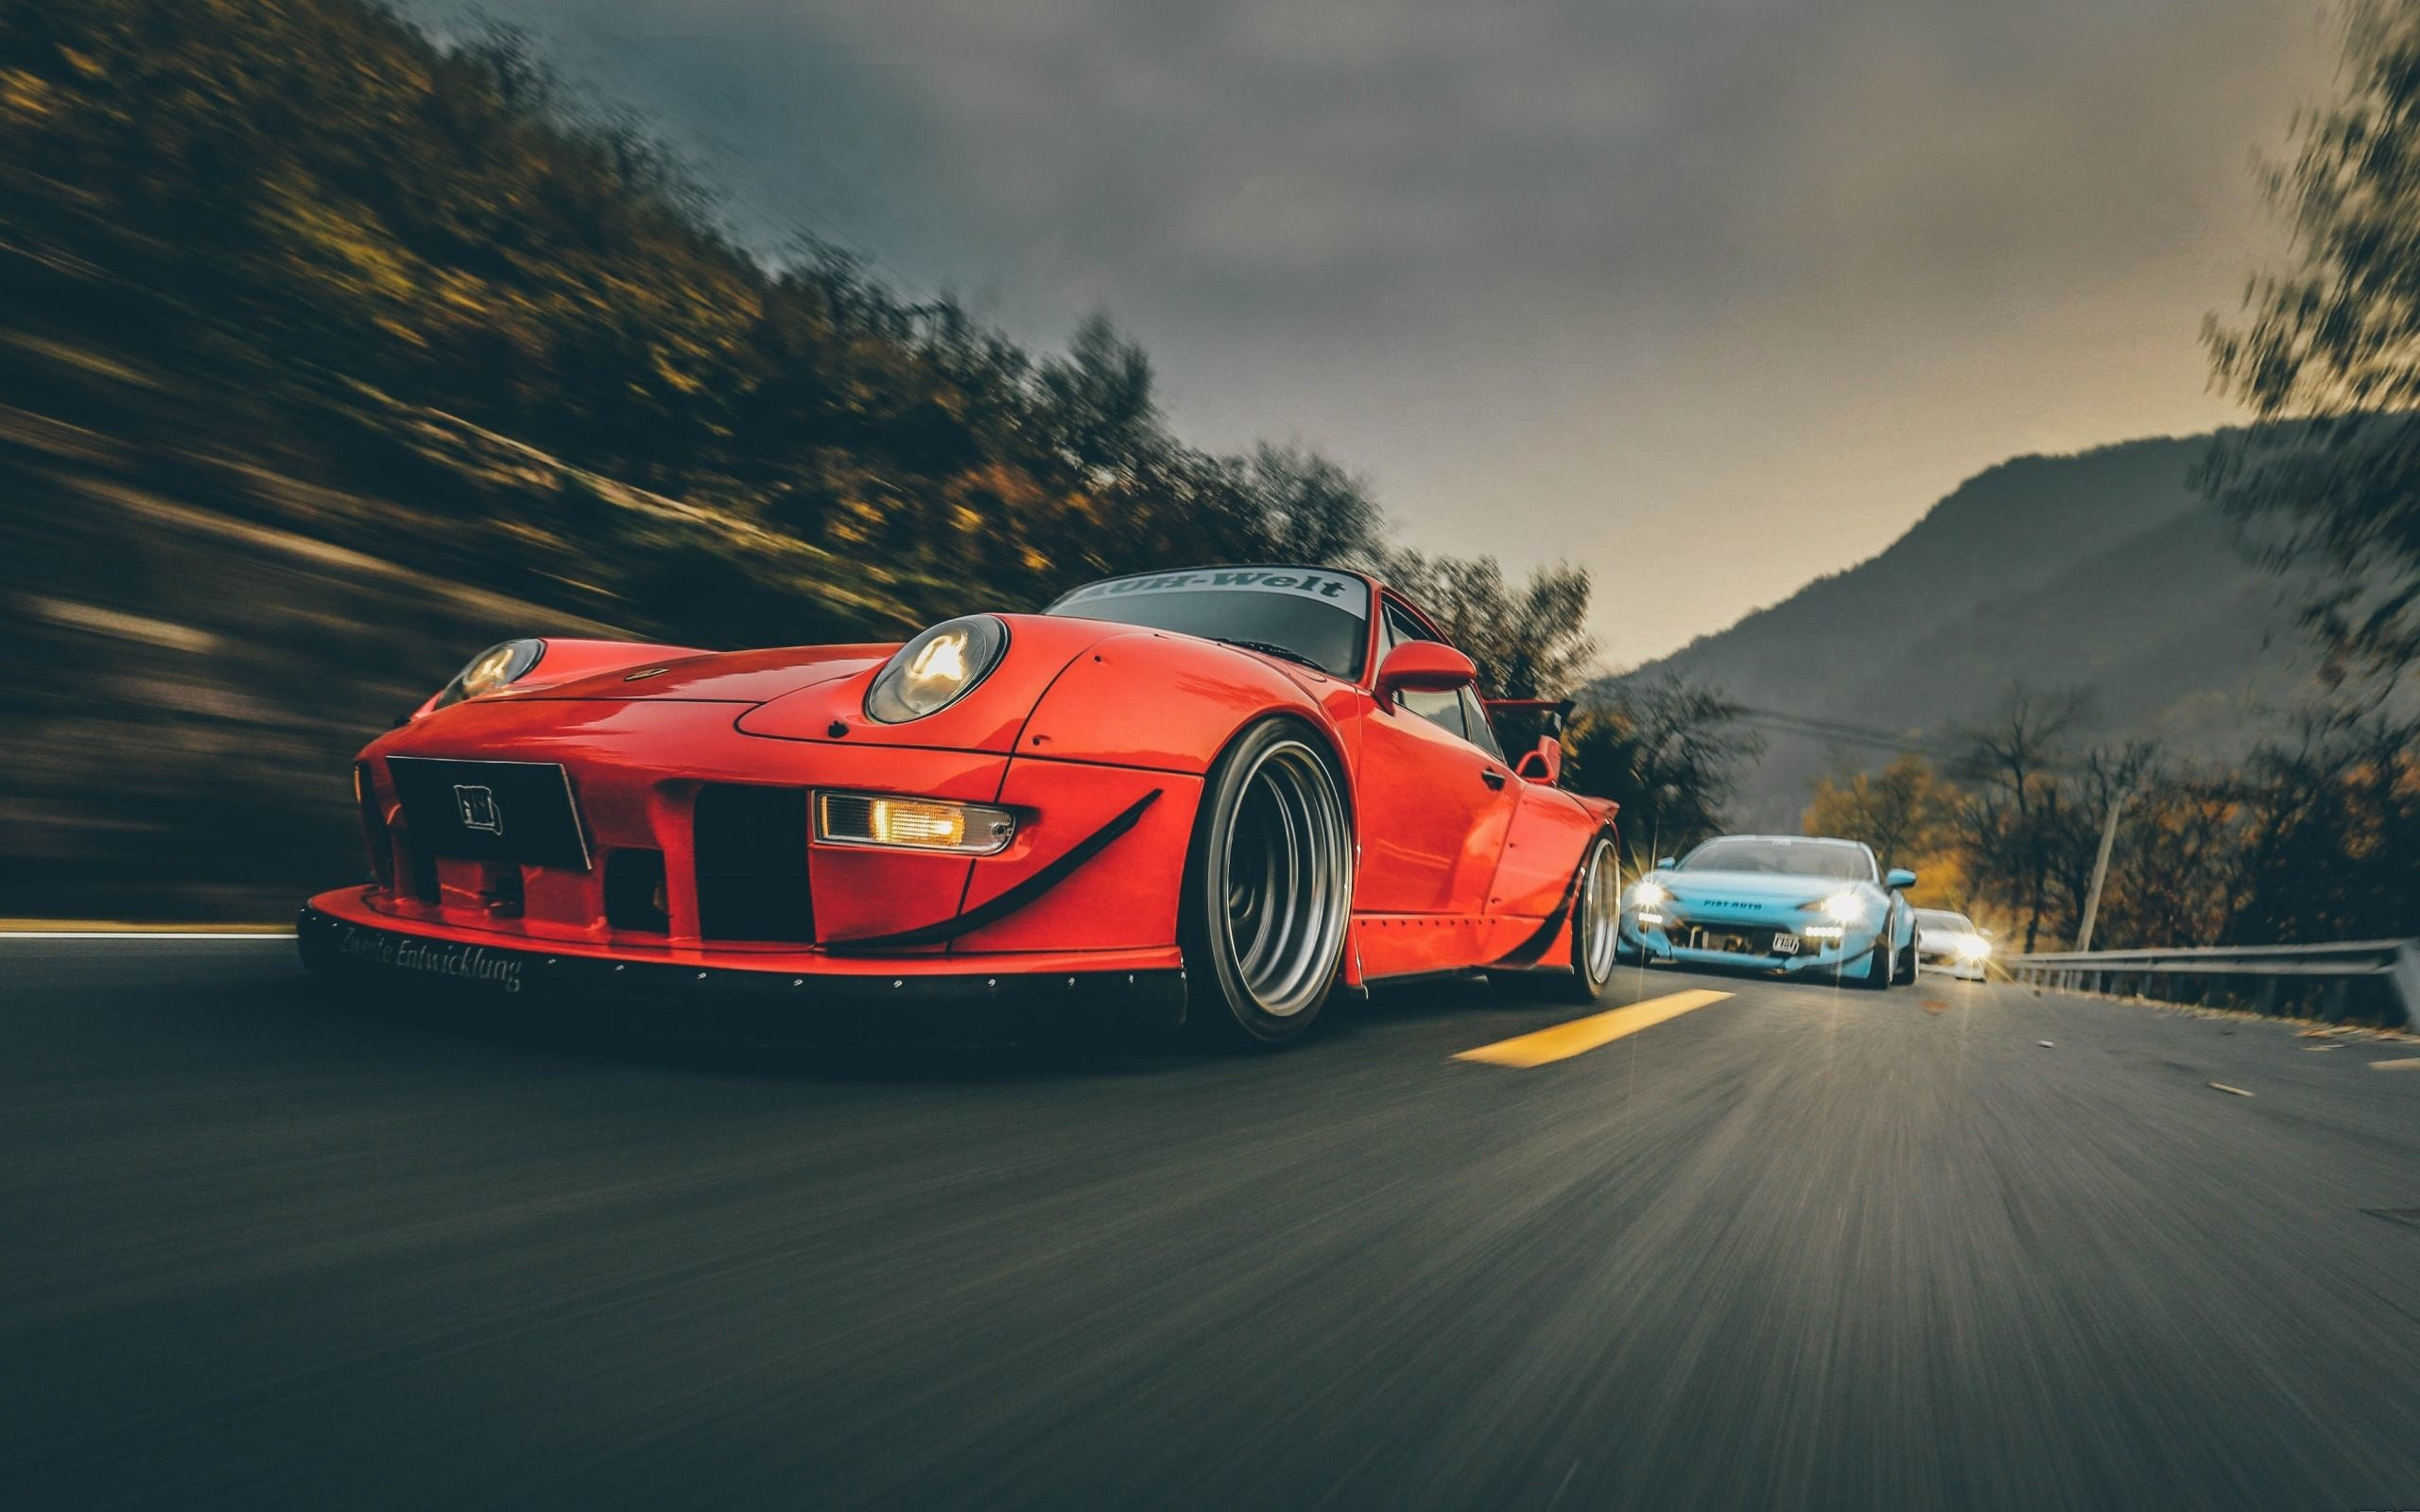 2560x1600 Porsche Cars Wallpaper